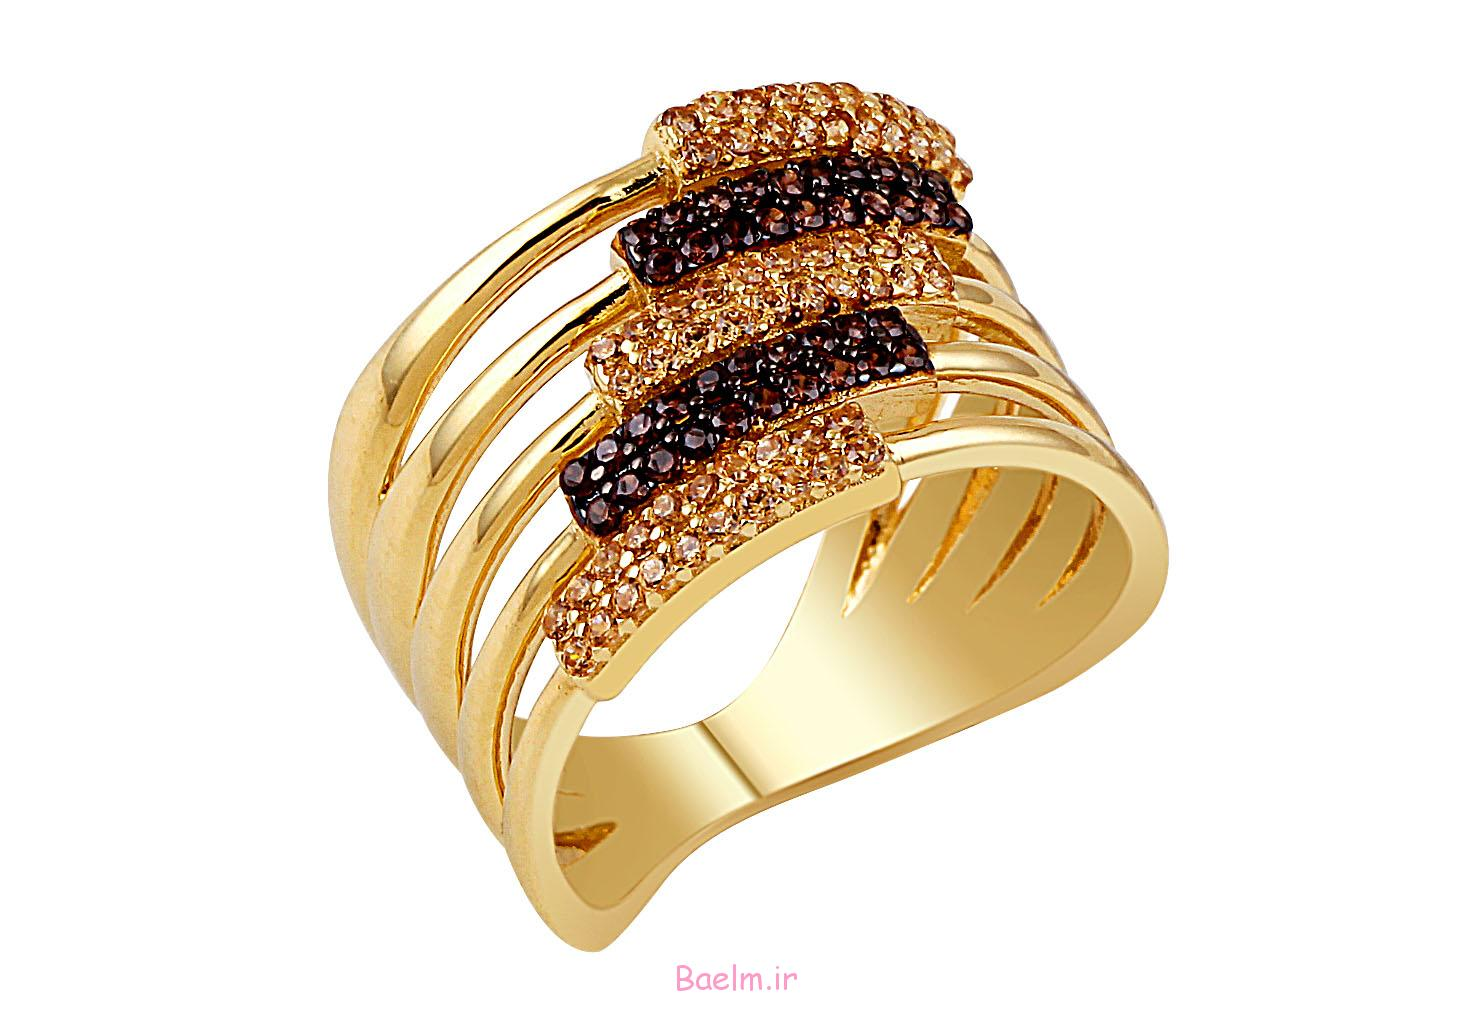 gold jewelry 9 Great Gold Jewelry Designs